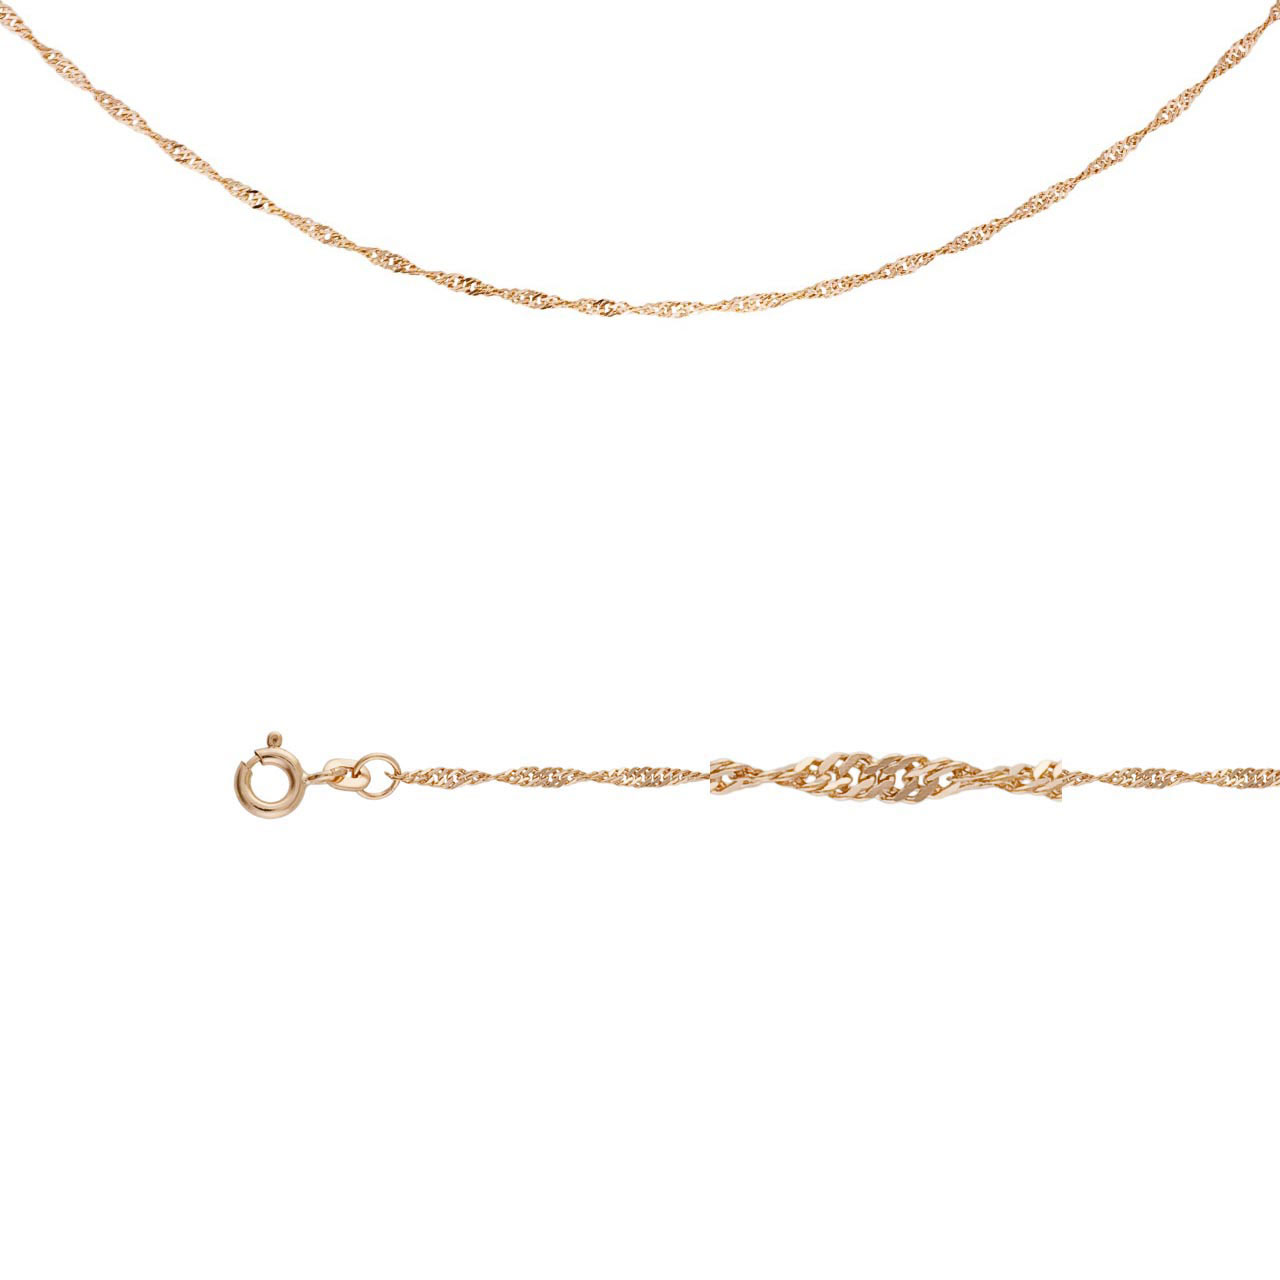 Rose gold Singapore chain 1